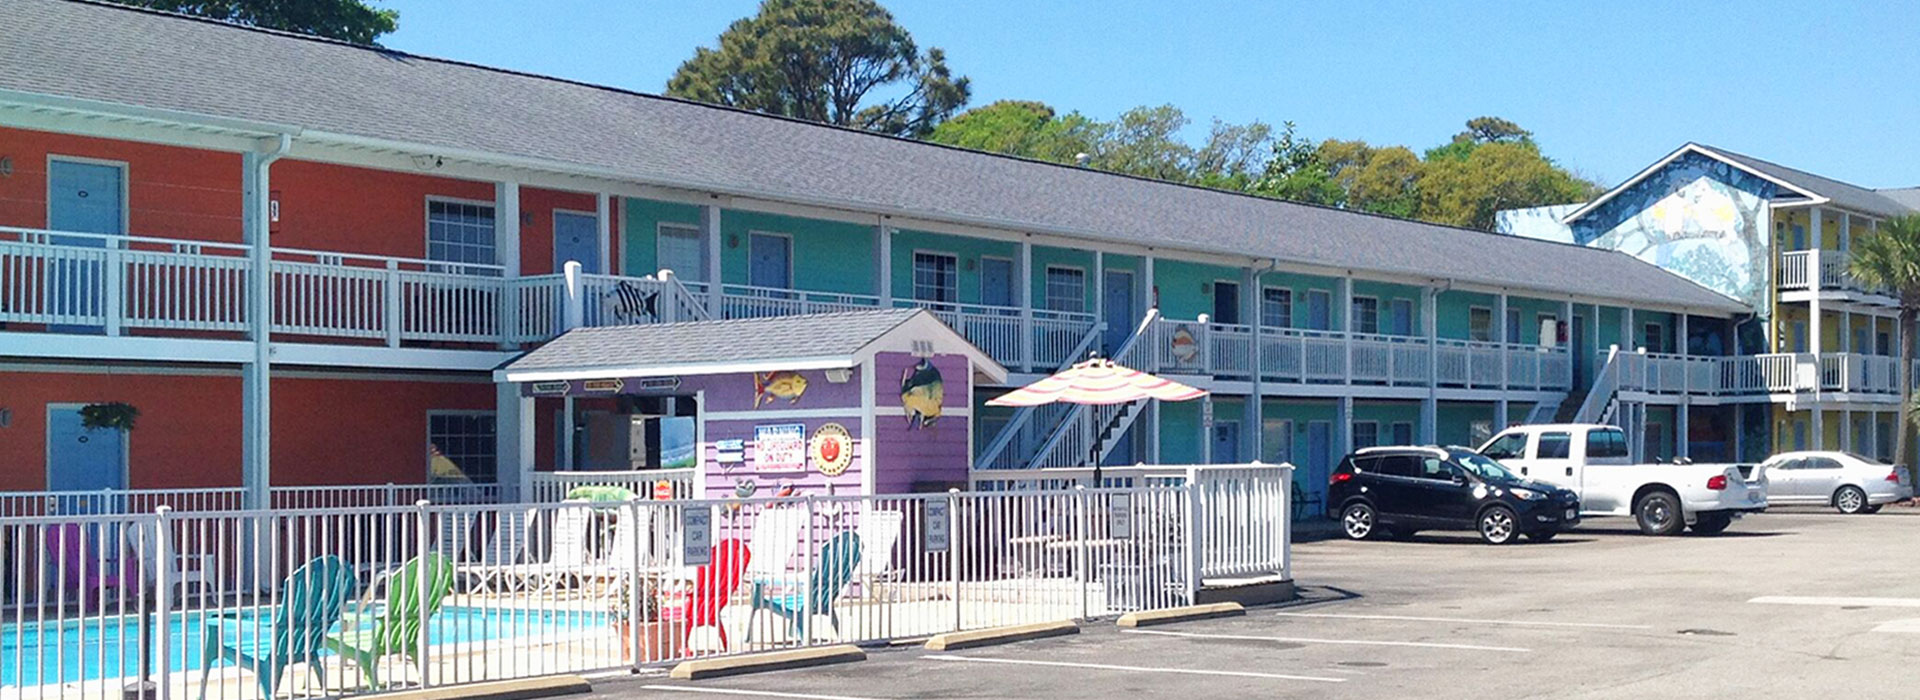 Carolina Beach Motel Drifter S Reef Hotel Nc Pet Friendly Lodging Rooms